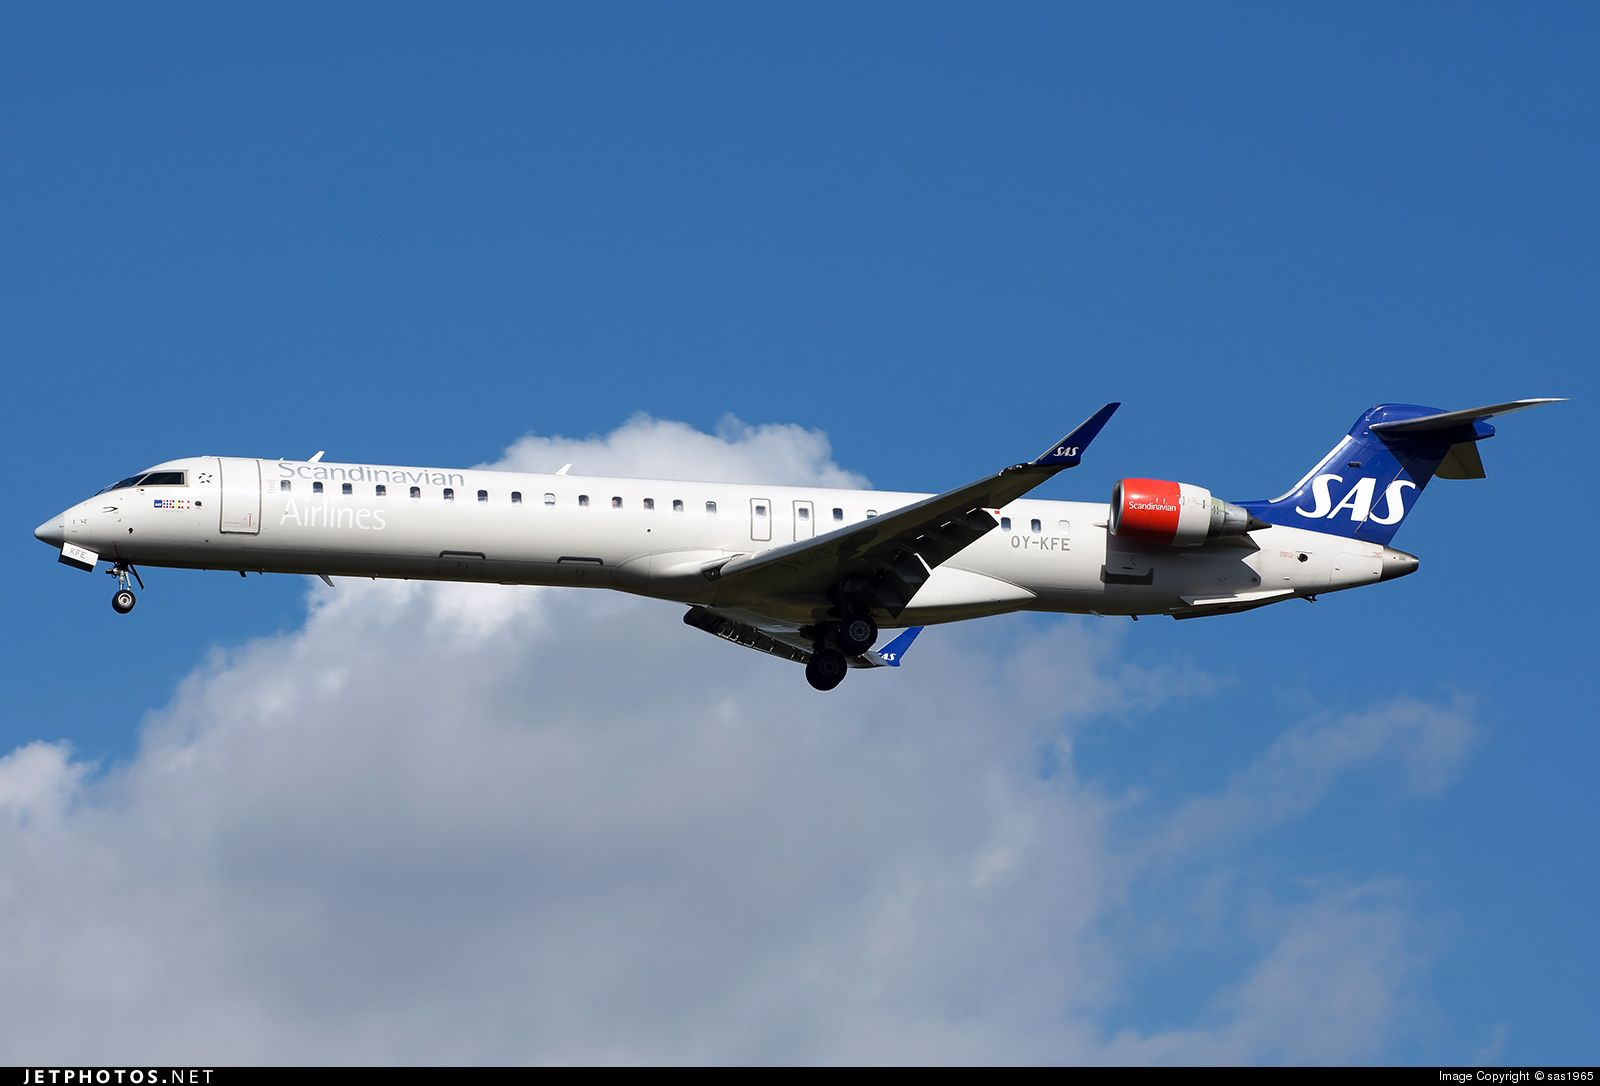 High Quality Photo Of Oy Kfe Cn 15224 Scandinavian Airlines Sas Bombardier Crj 900 By Sas1965 Sas Aviation Photo Online